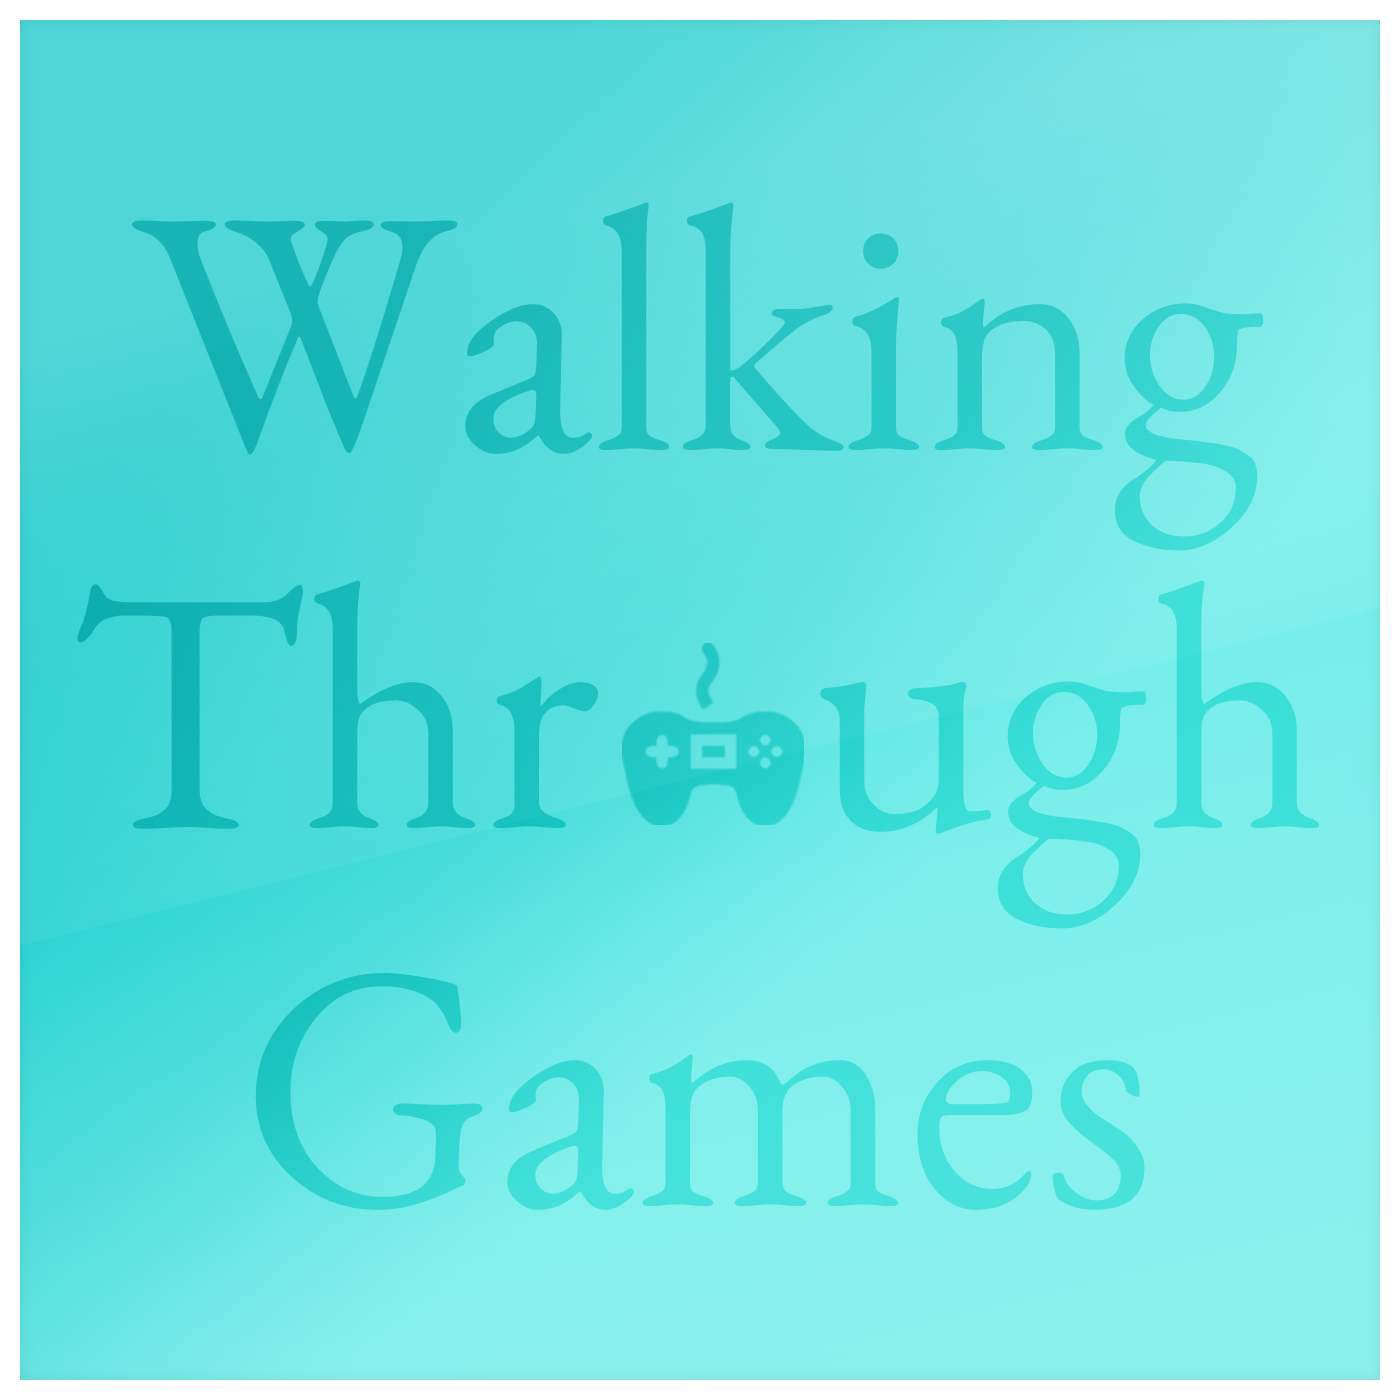 Walking Through Games